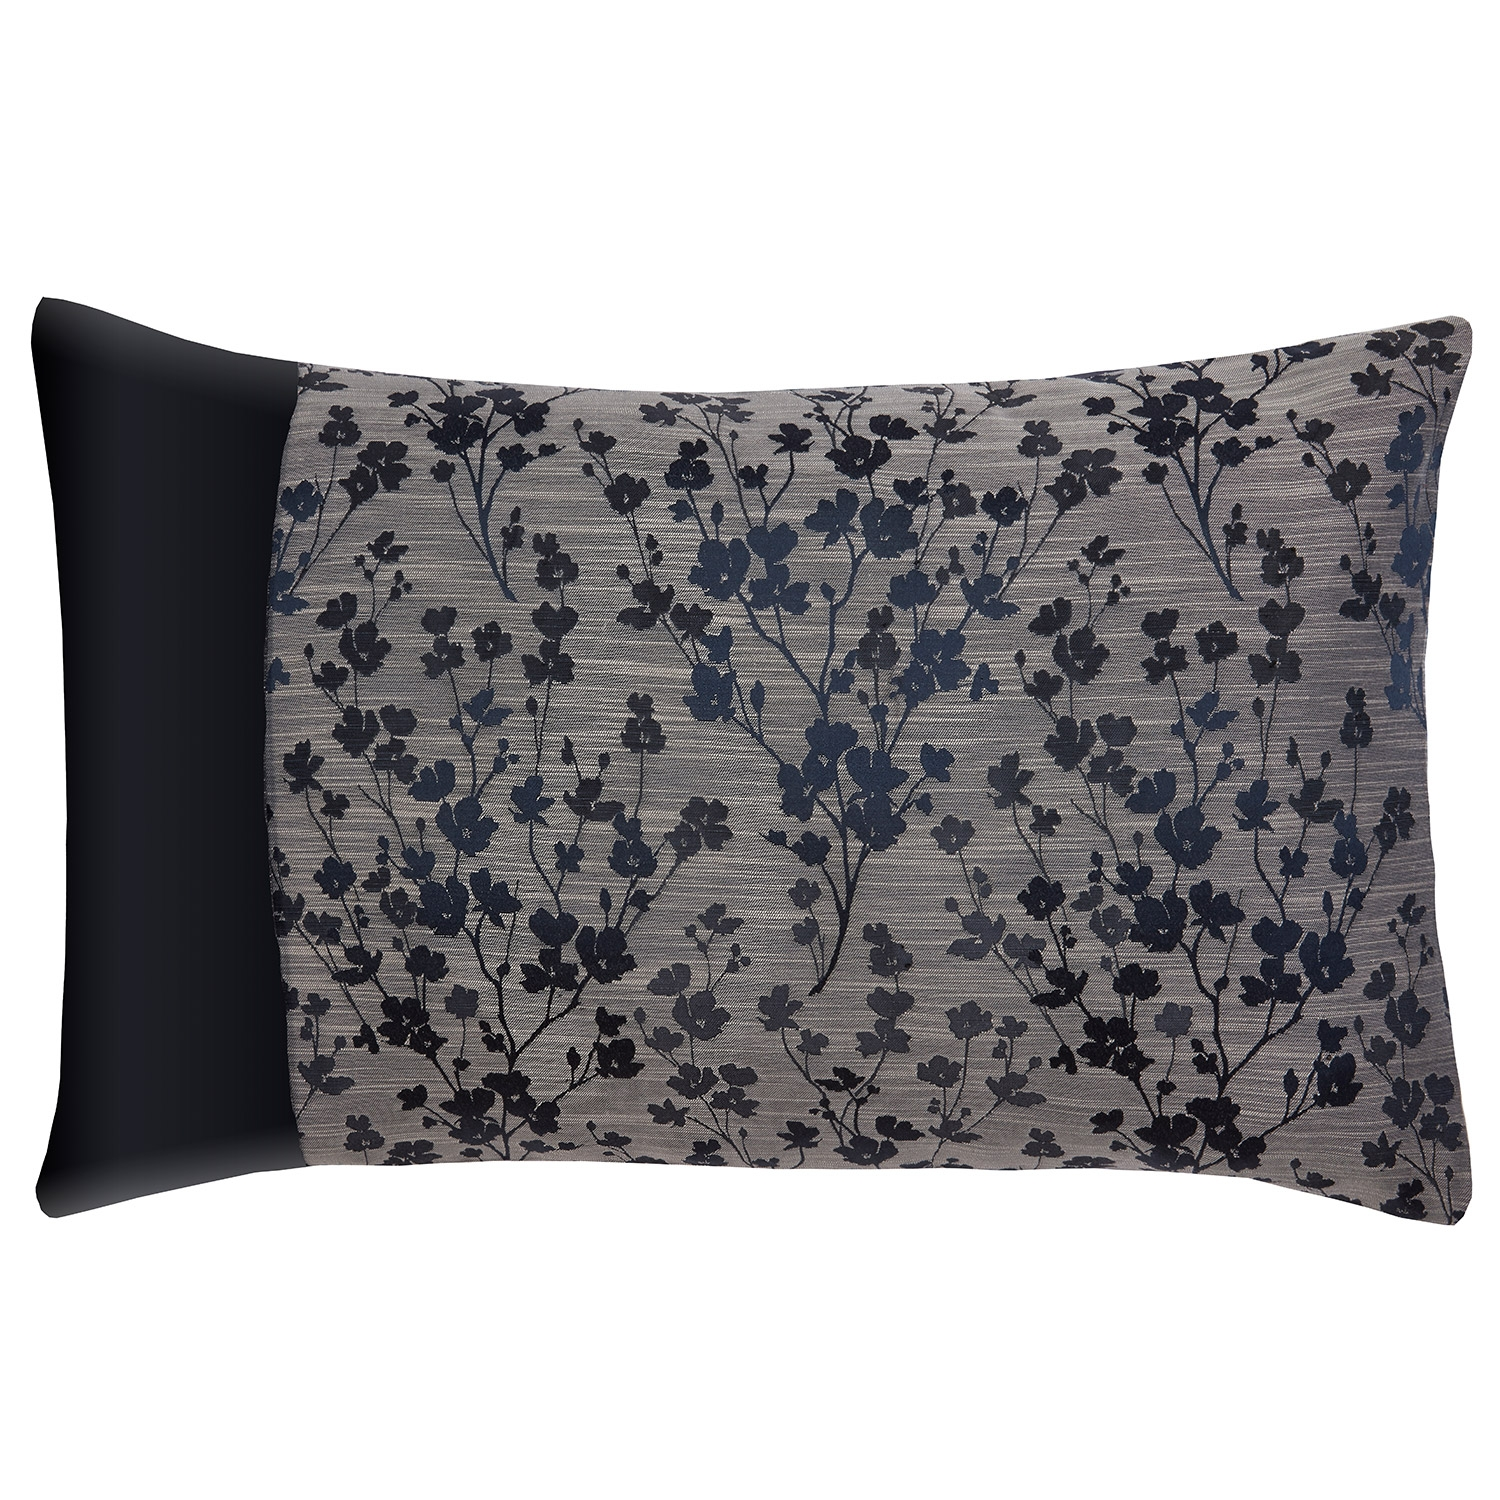 Blossom Navy Floral Jacquard Housewife Pillowcases (Pair)